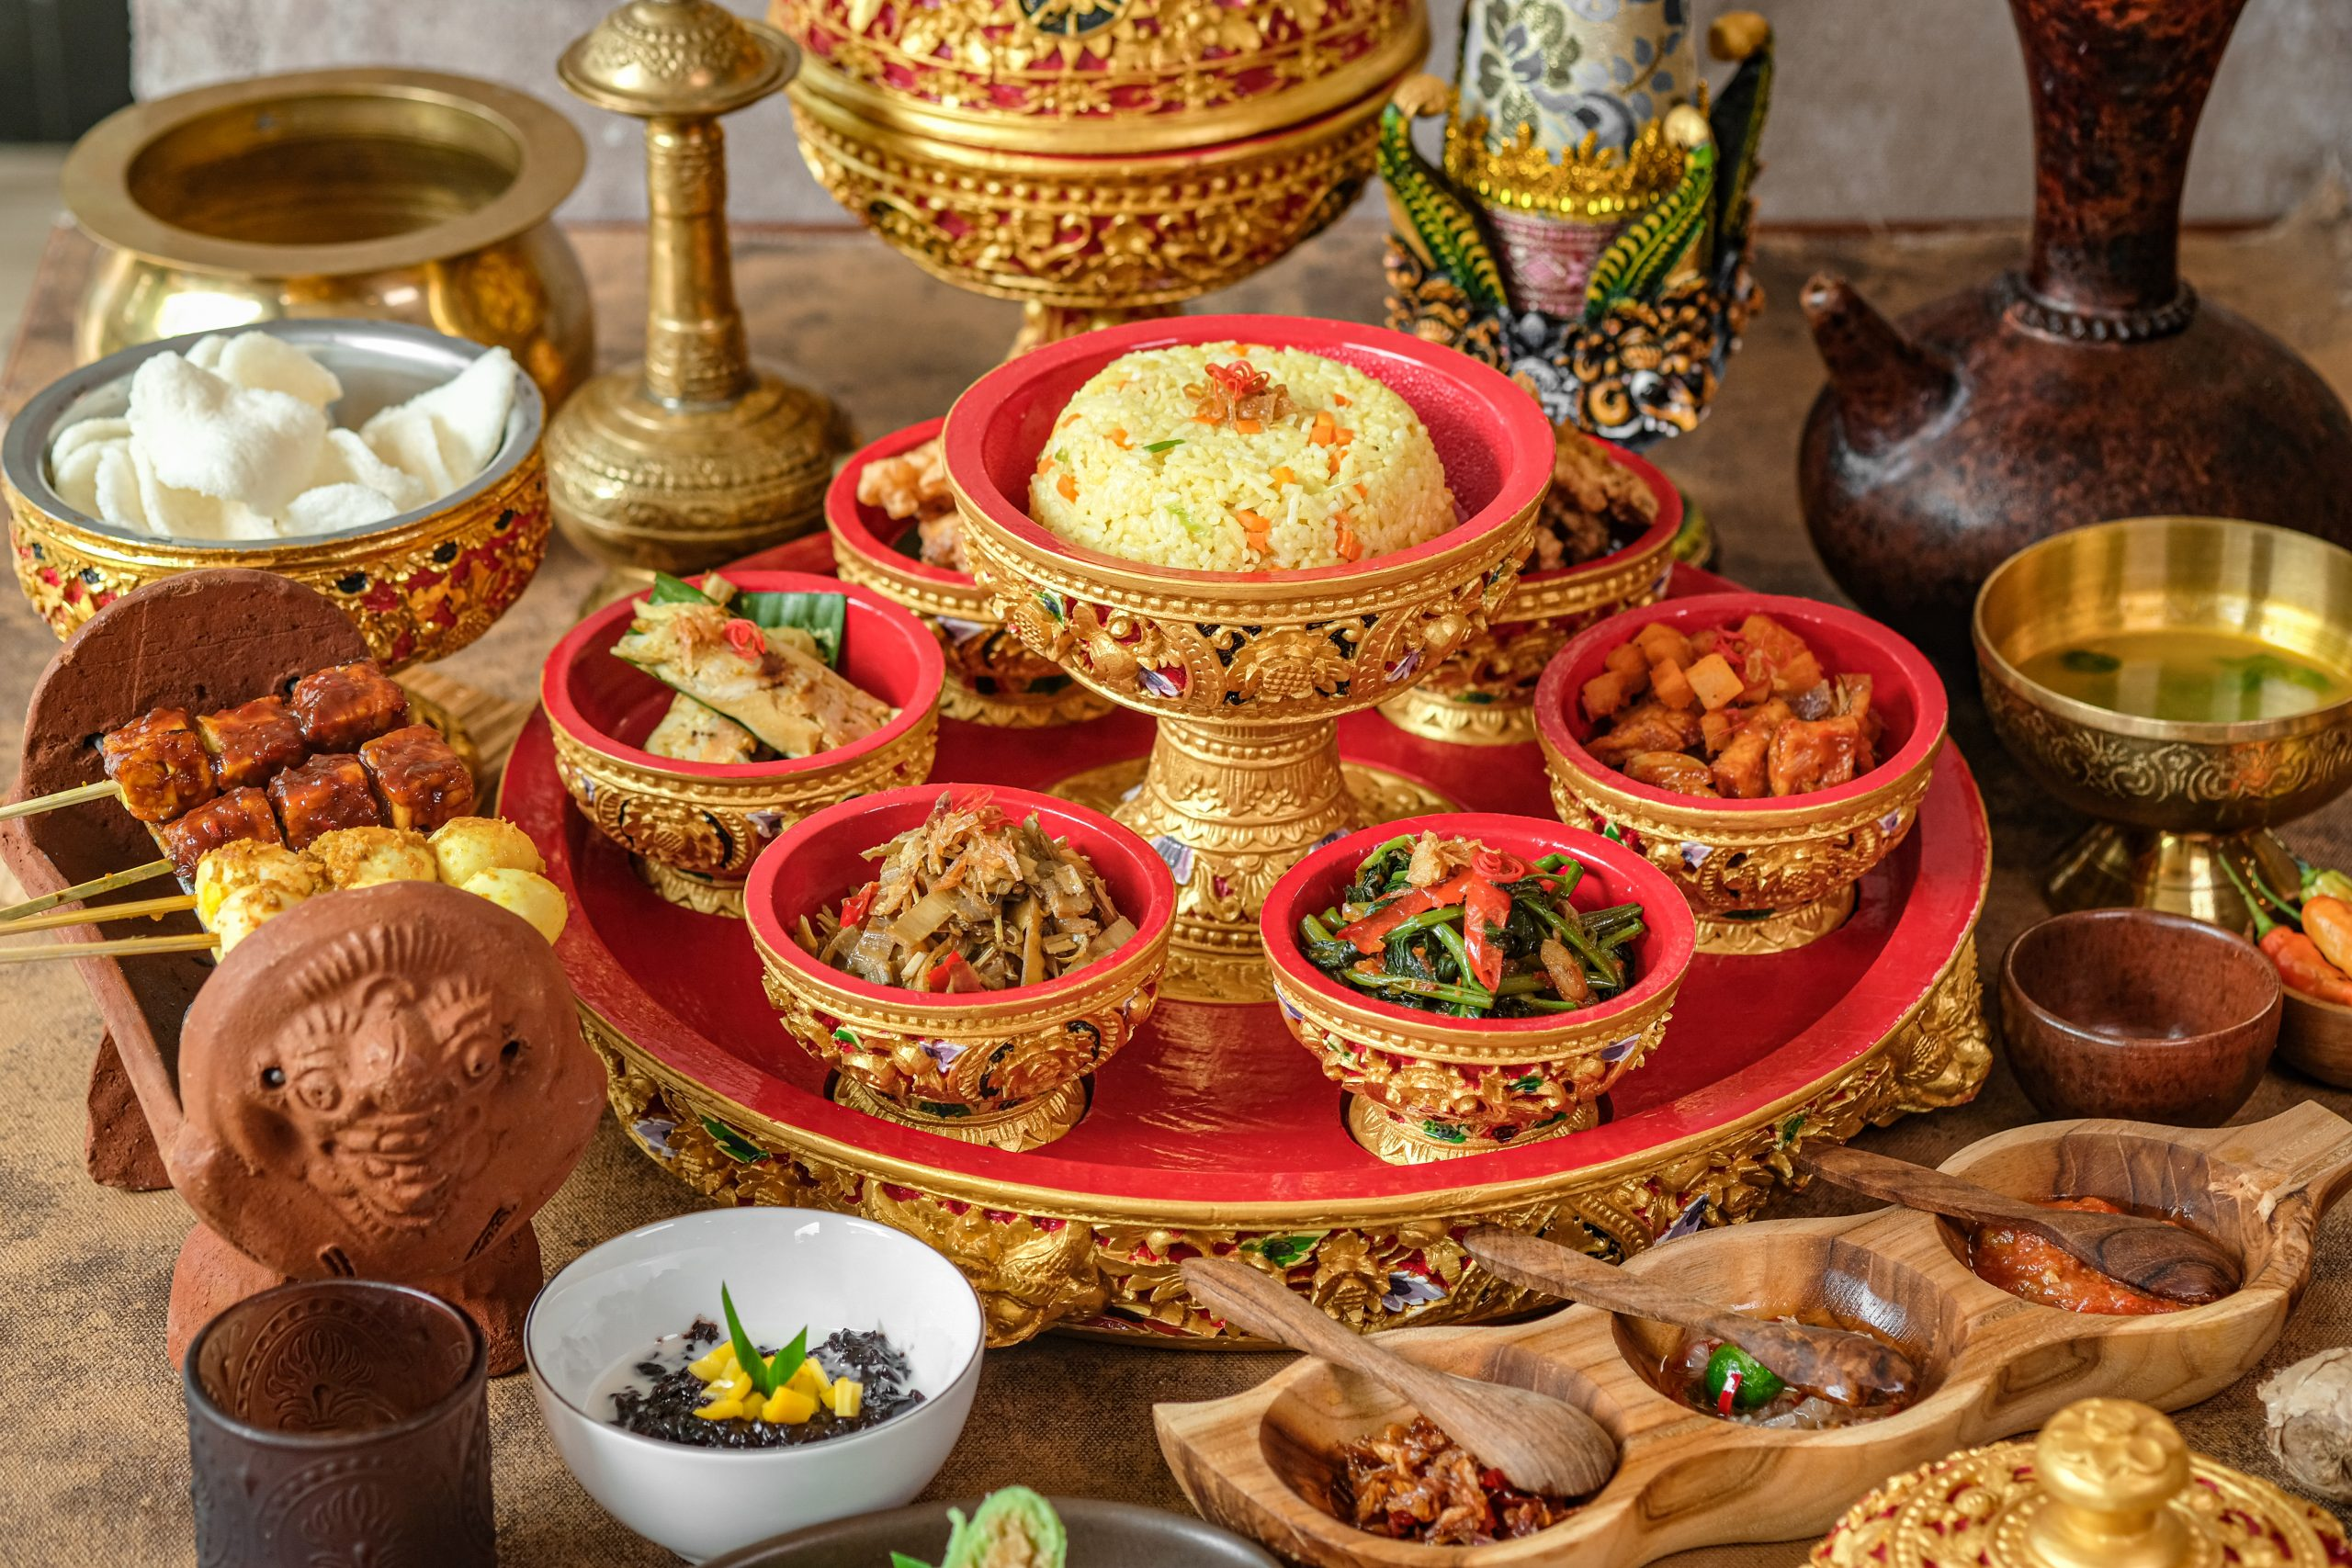 https://highend-traveller.com/royal-balinese-rijsttafel-at-dapur-raja/